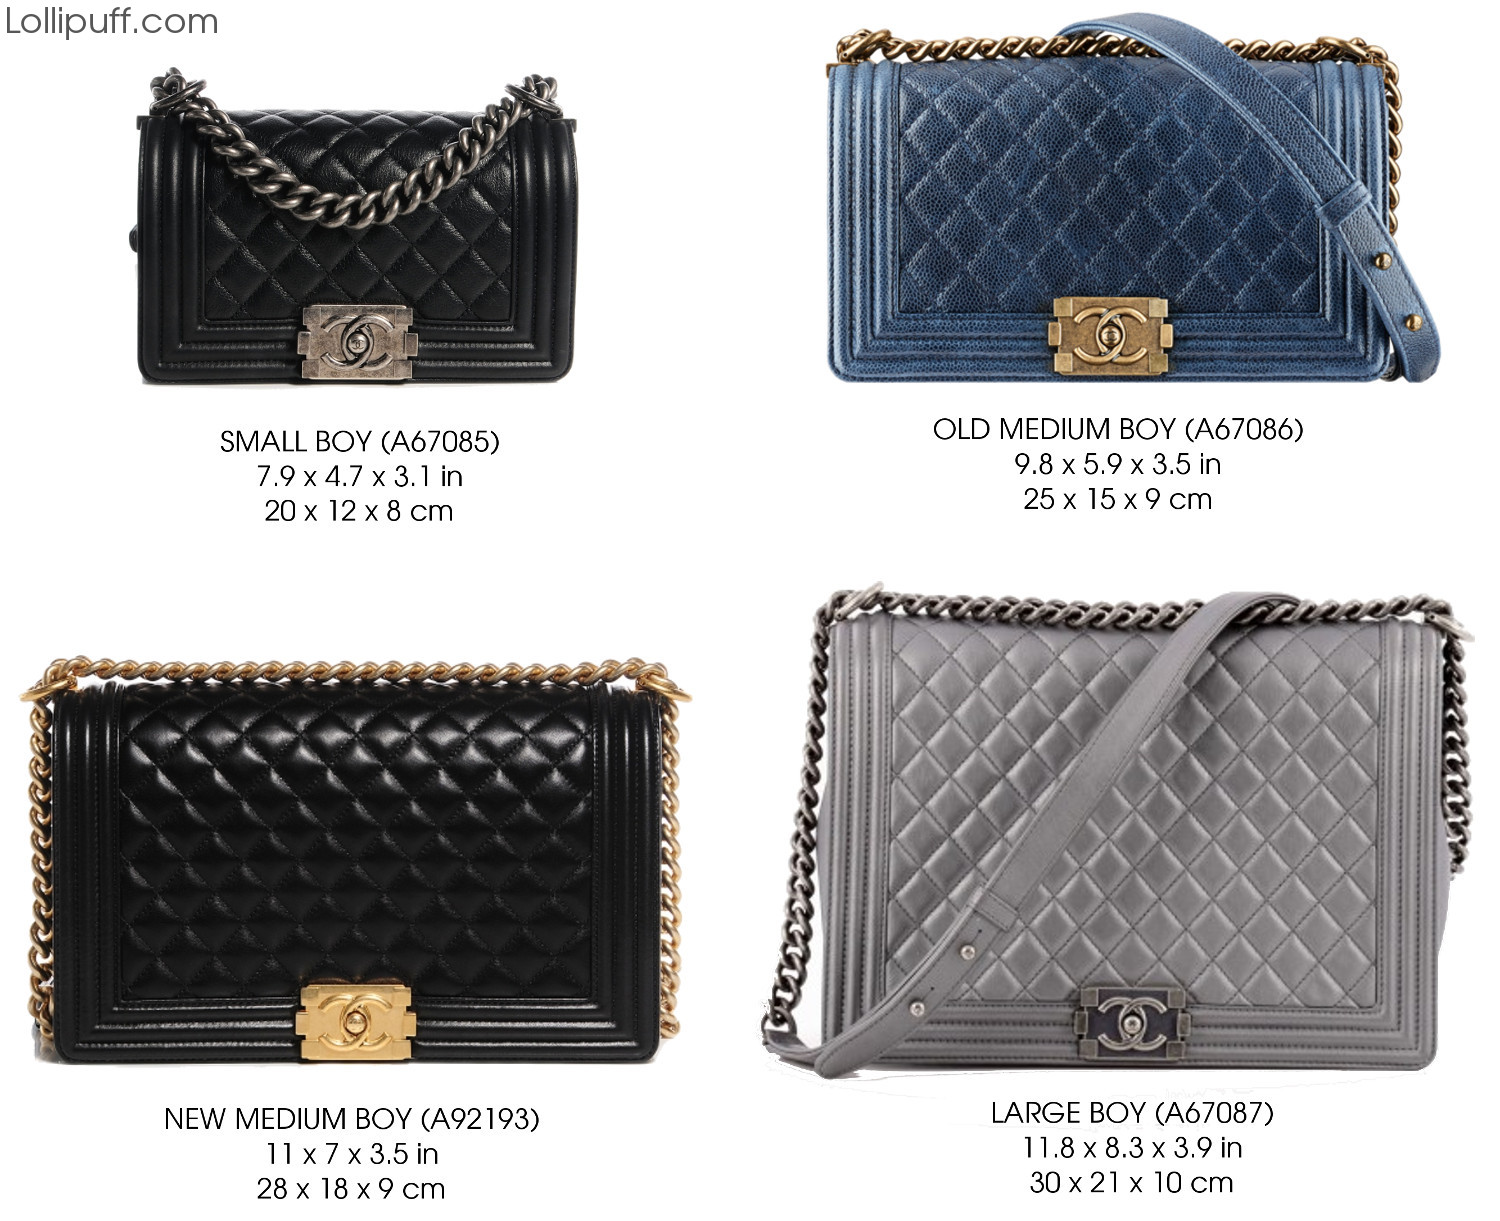 b7d27c1841777 Chanel Boy Bag Size Guide